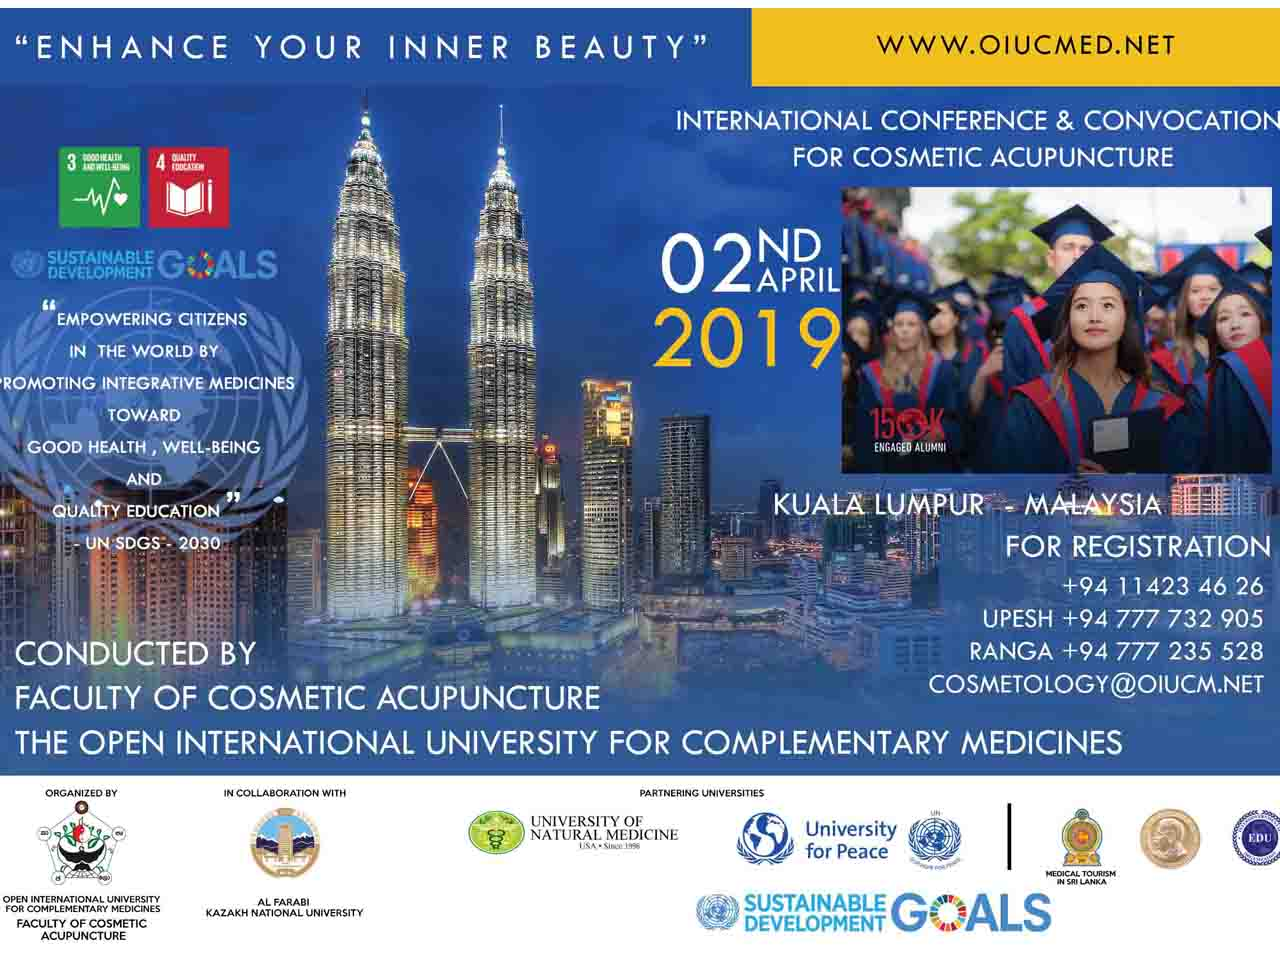 OIUCMED | The Open International University for Complementary Medicines